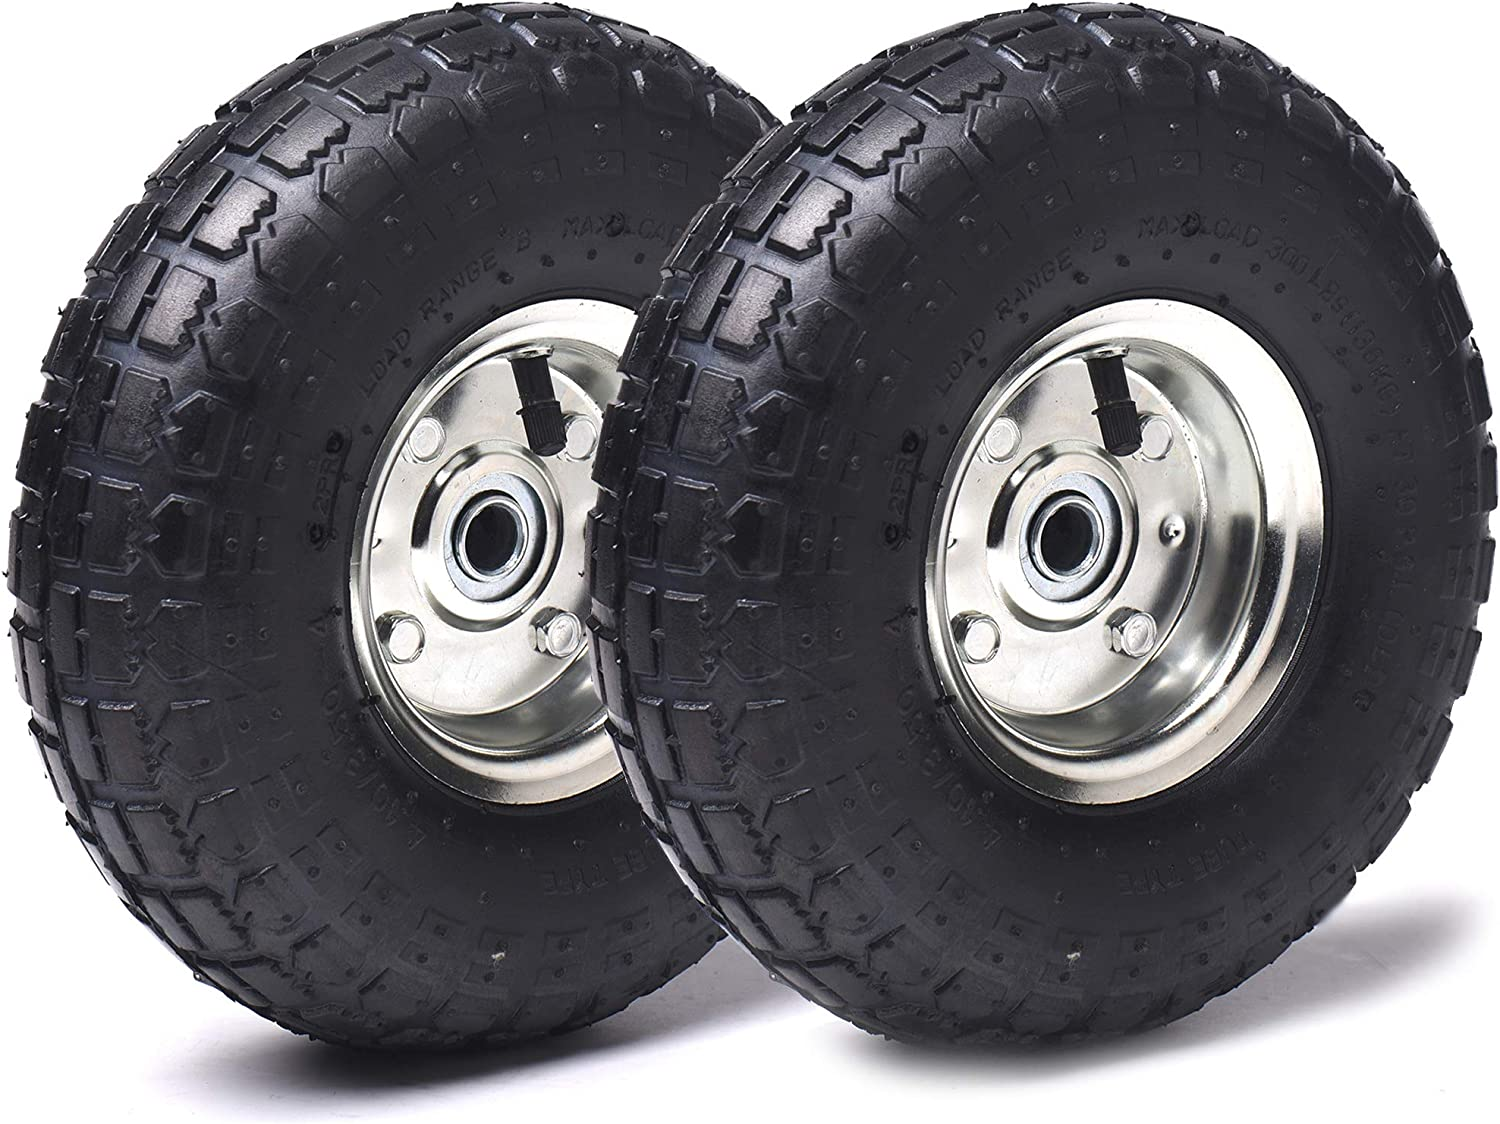 "AR-PRO (2- Pack) 4.10/3.50-4"" Heavy Duty Replacement Tires/Wheels/Inner Tubes 10"" with a 5/8"" Diameter Hole with Double Sealed Bearings"